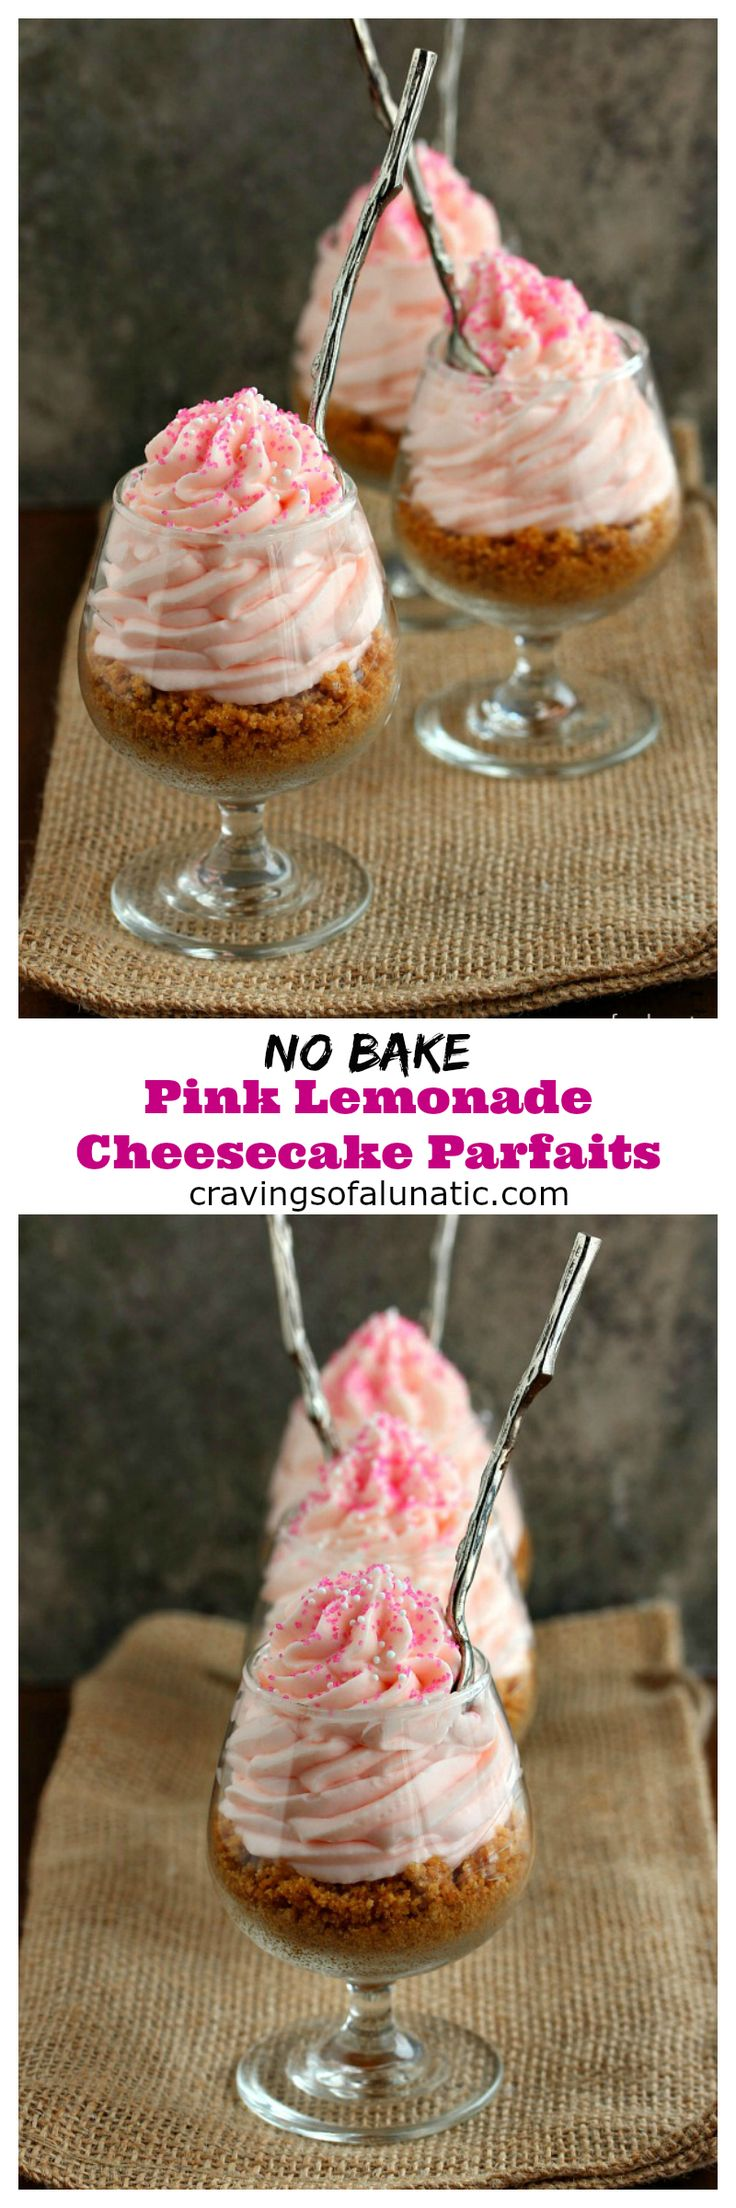 No Bake Pink Lemonade Cheesecake Parfaits from cravingsofalunatic.com- These super easy to make No Bake Pink Lemonade Cheesecake Parfaits are absolutely scrumptious. These will have you stealing them from your family members. No lie! (@CravingsLunatic)